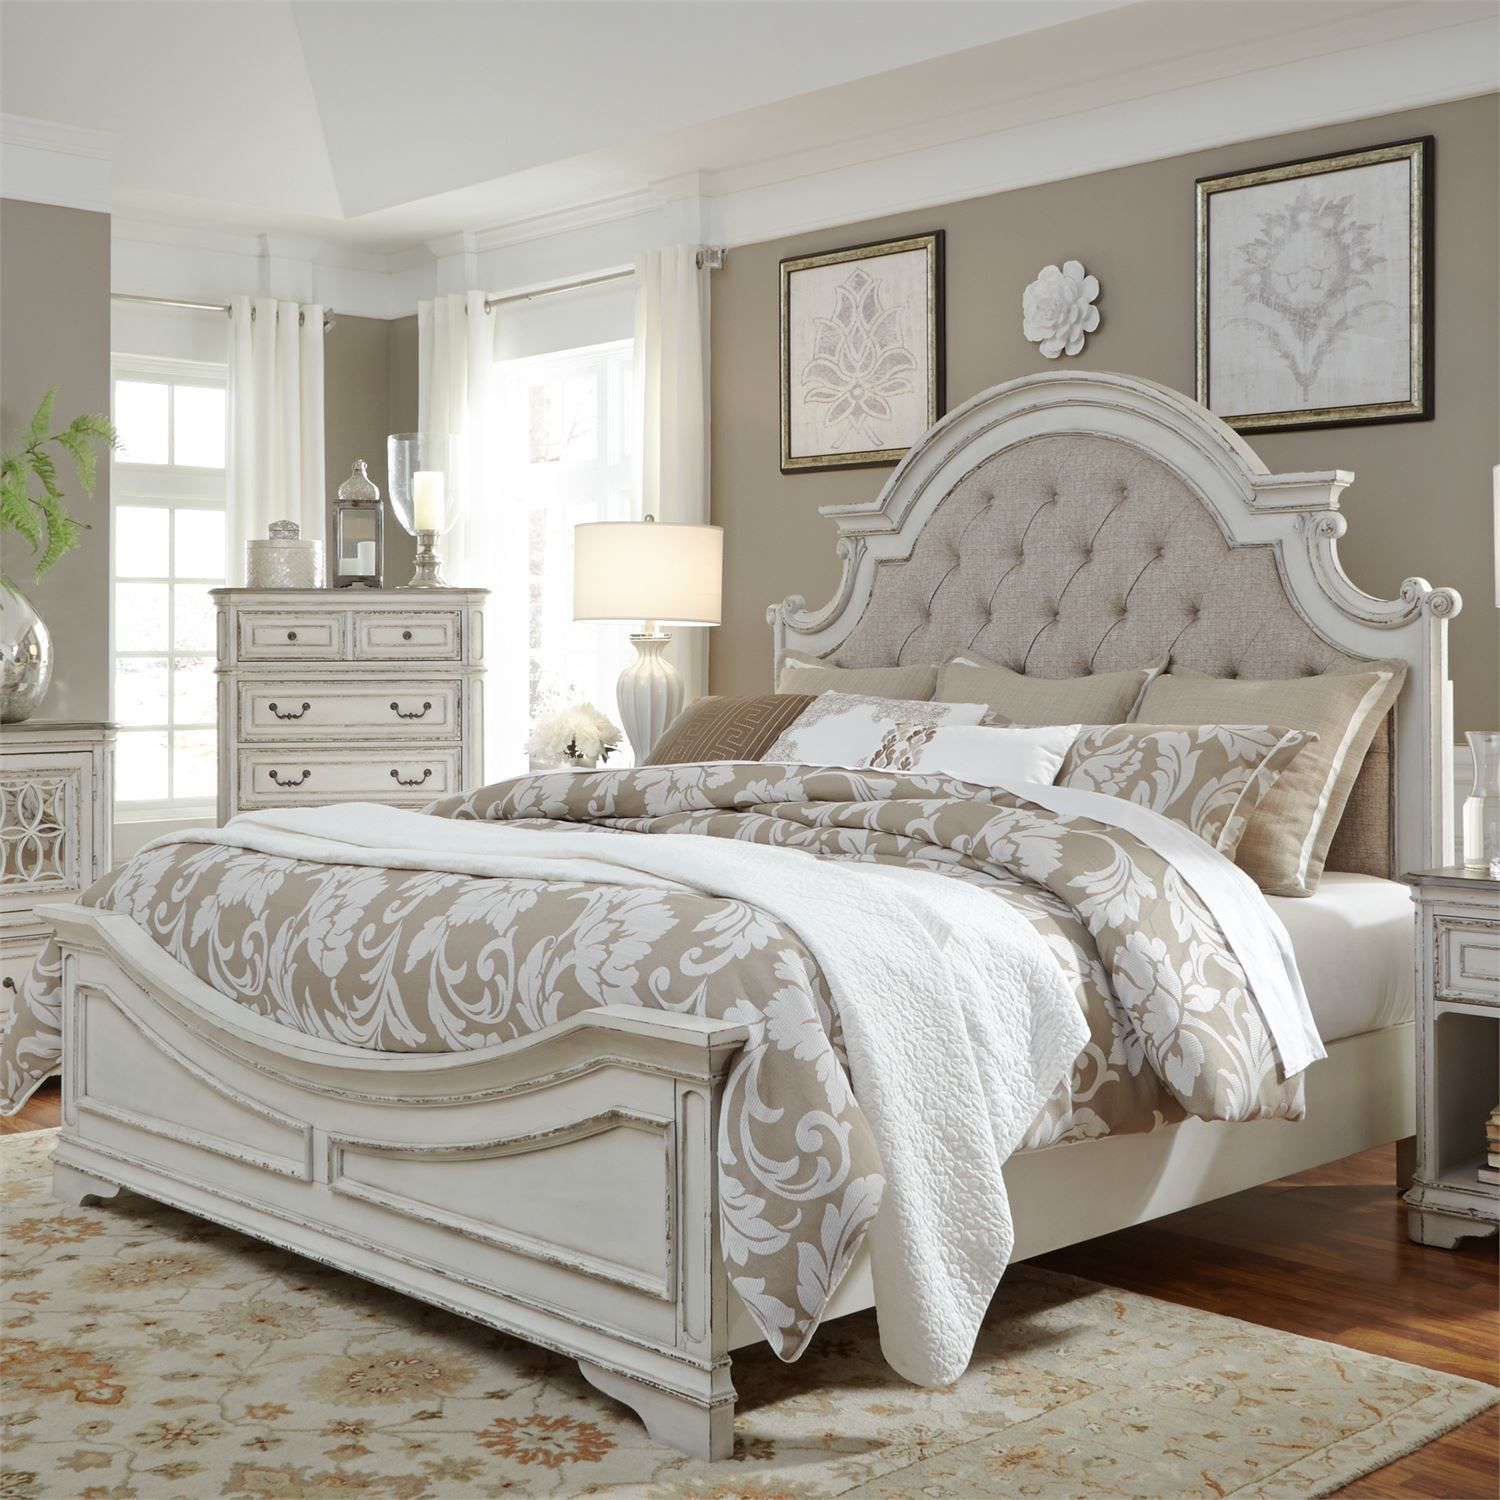 Magnolia Manor Upholstered Bed Liberty furniture, White